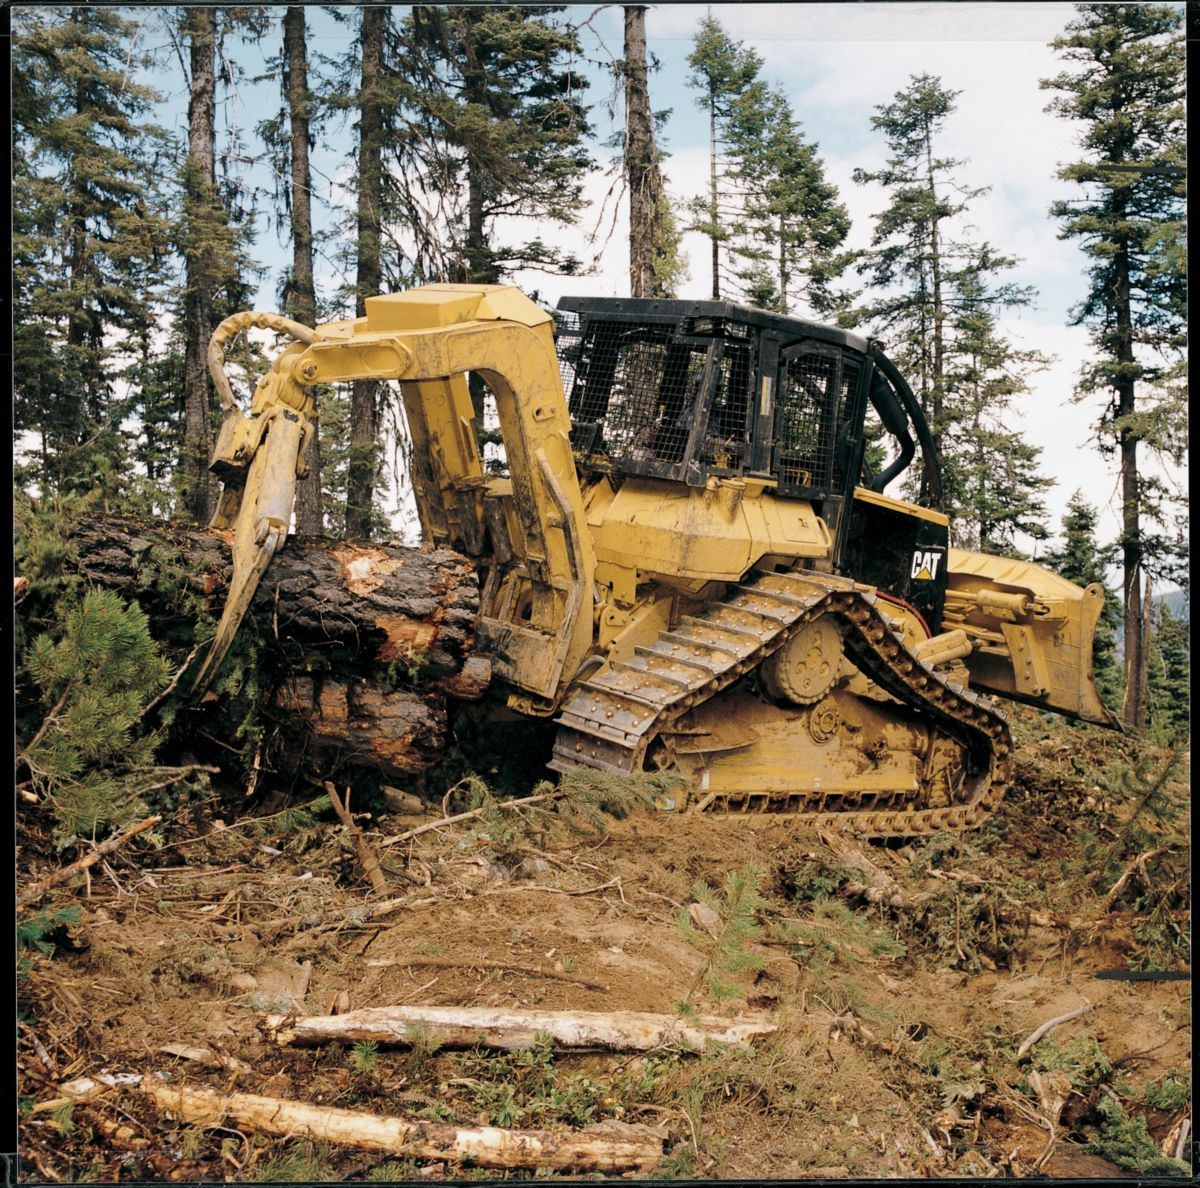 Tree farmer skidder for sale in ny - Cat 527 Skidder Wrestling With Big Timber Cat Forestry